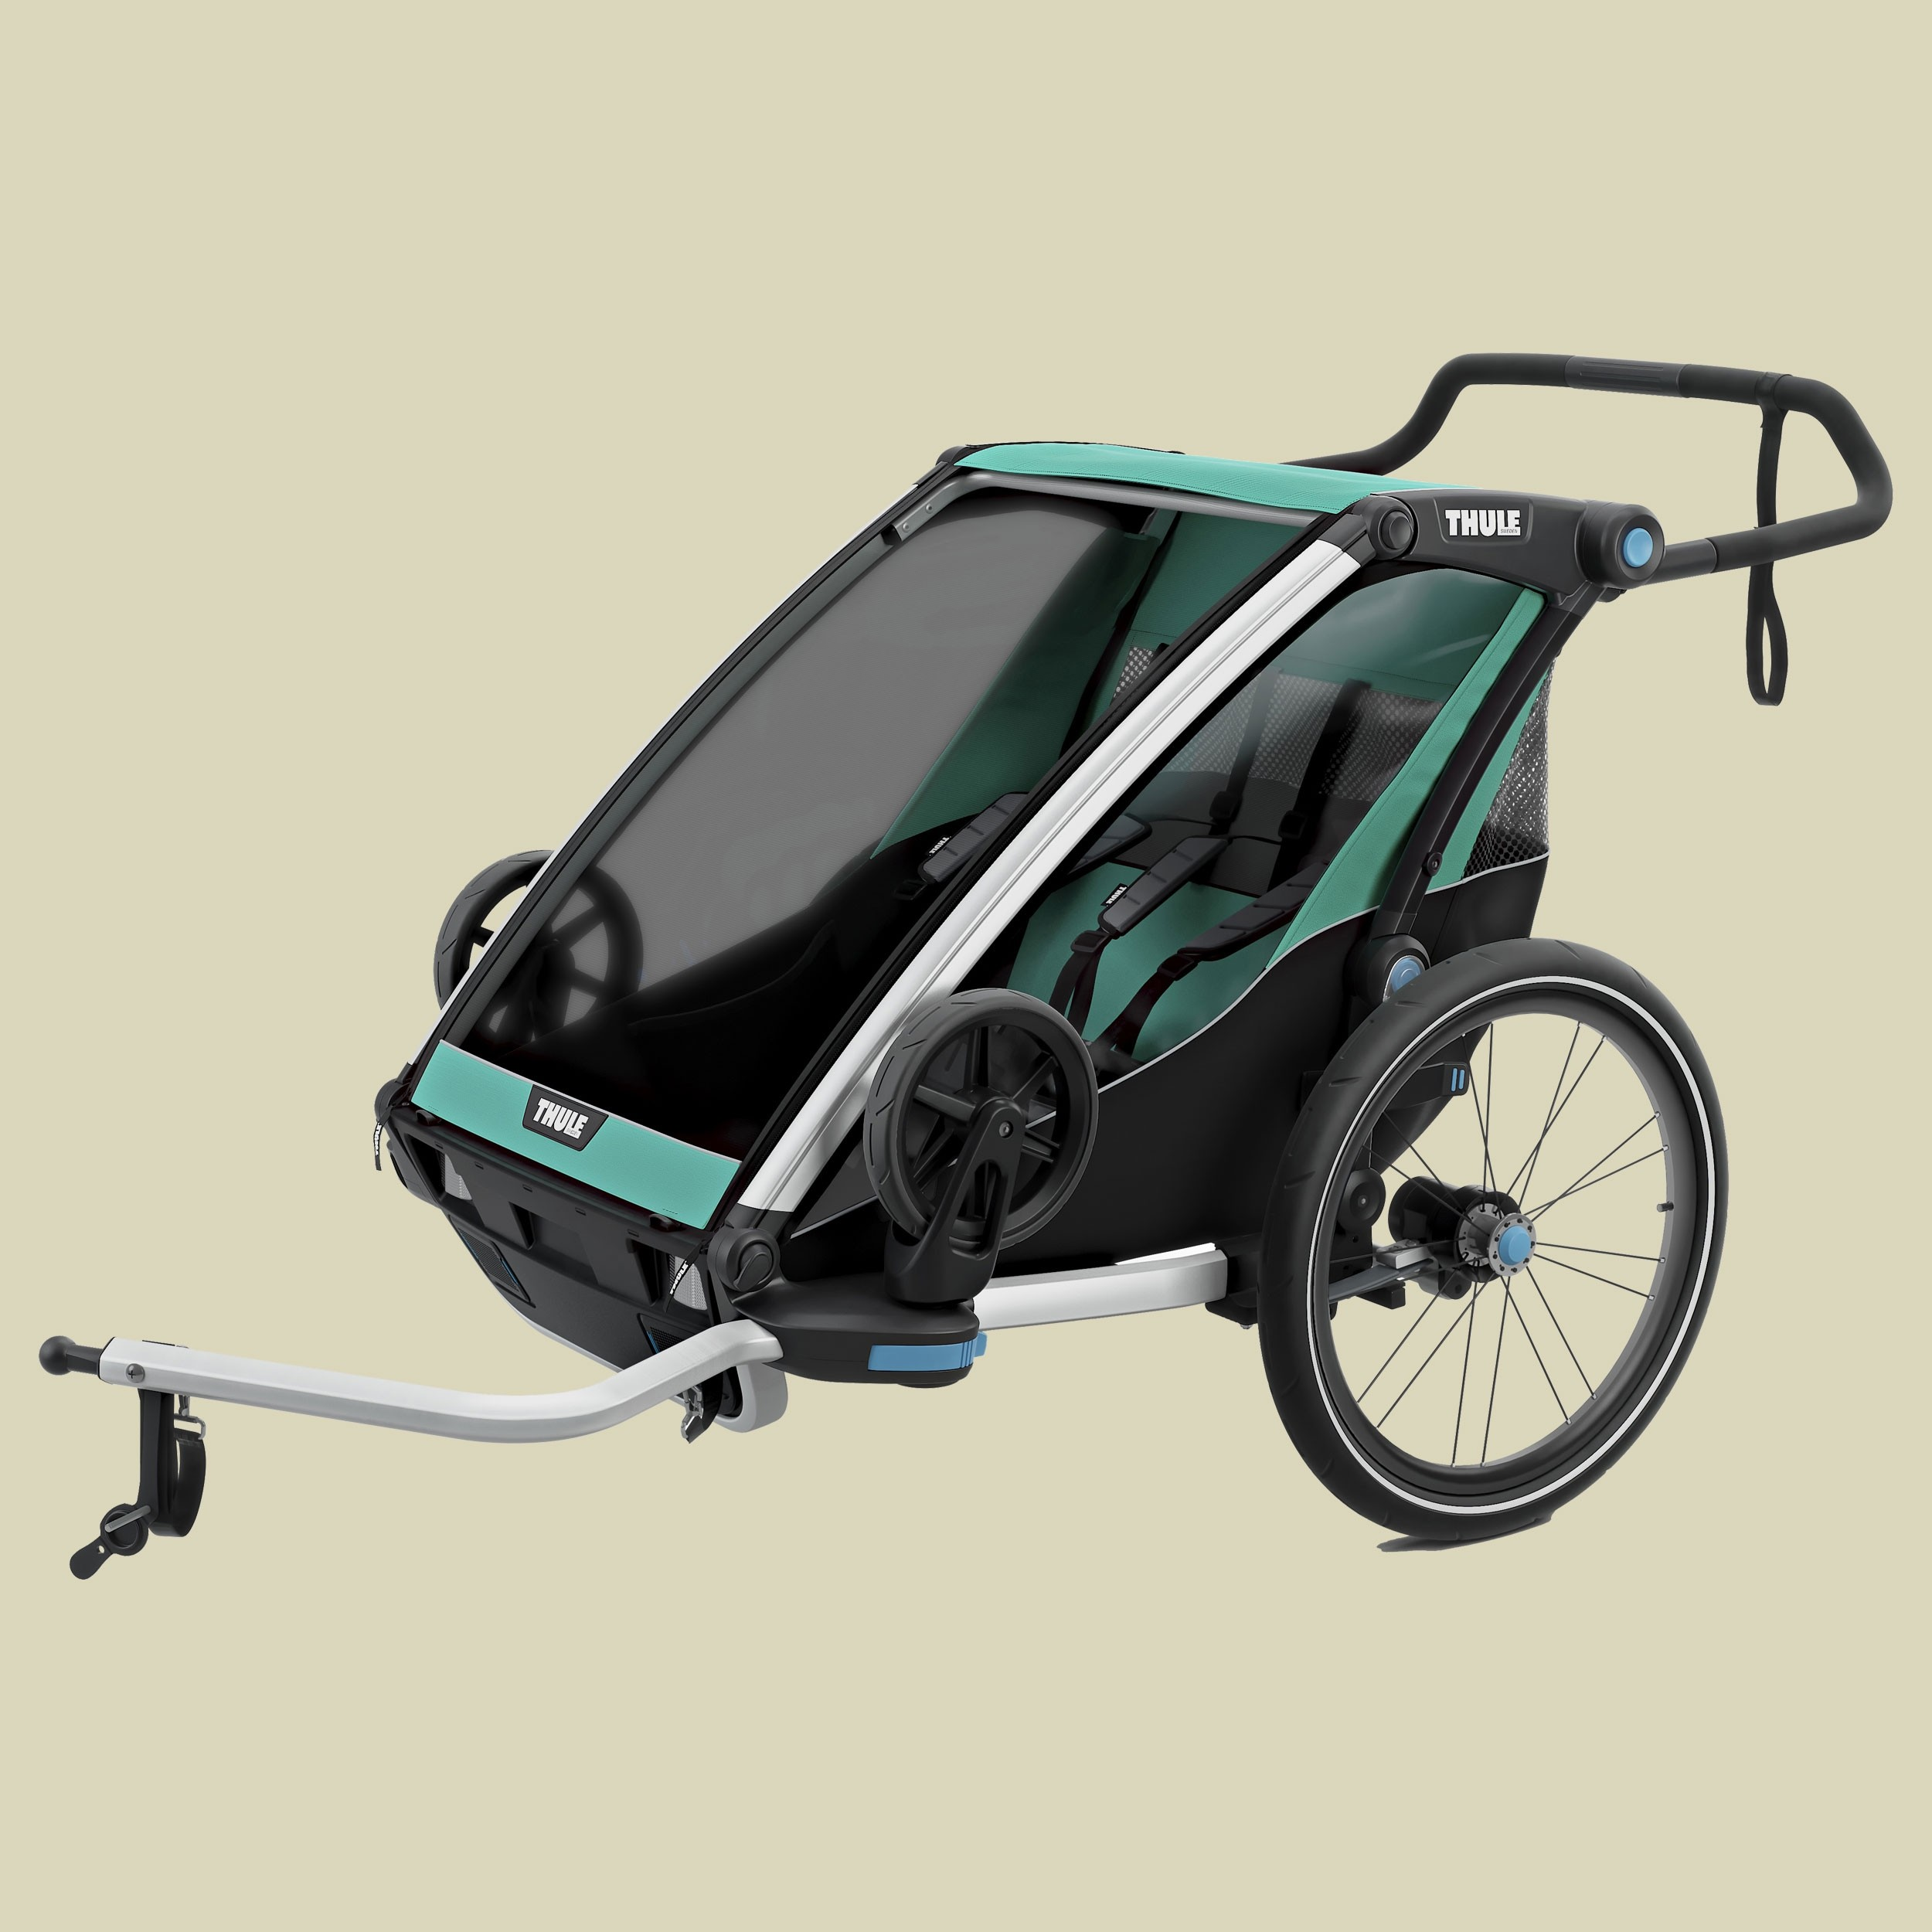 thule_chariot_lite2_bluegrassblack_cycling_iso_10203007_fallback